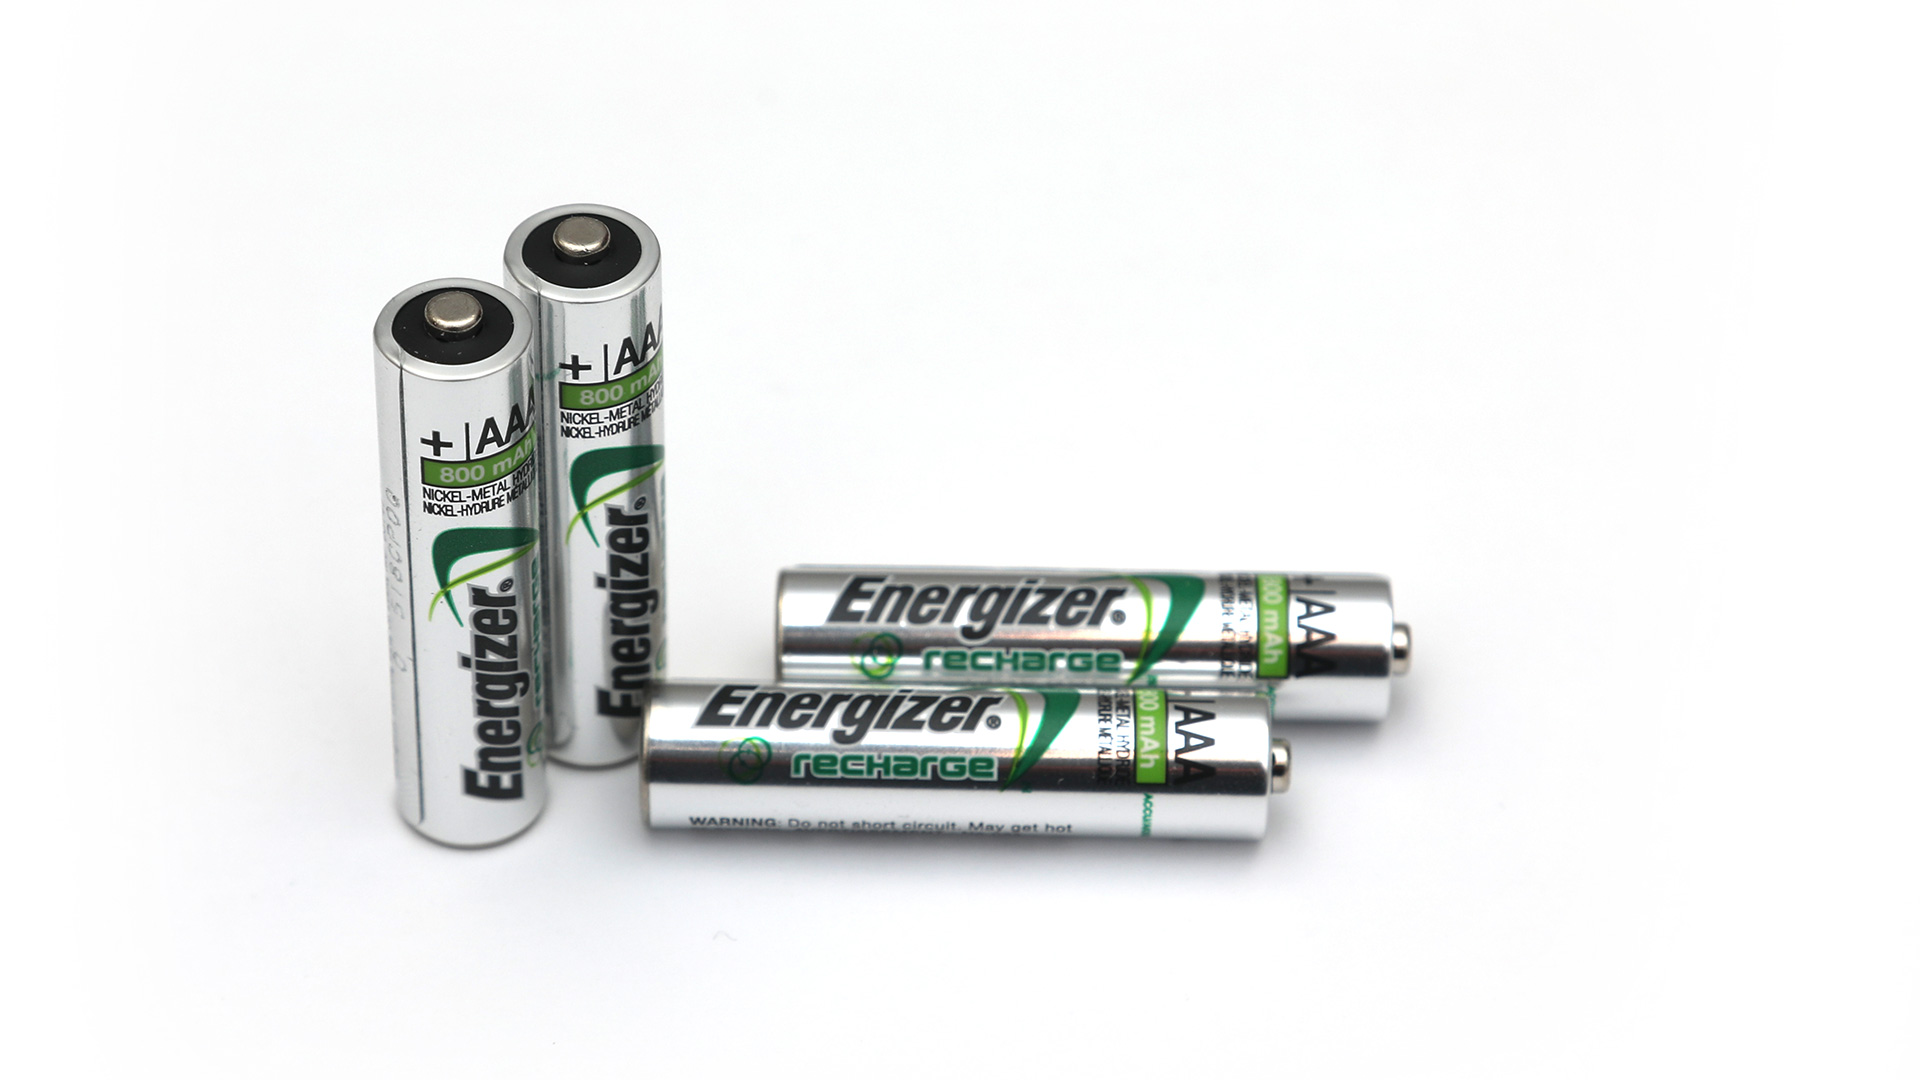 Accu Rechargeable 1 2v Aaa 800 Mah Energizer Accu Recharge Extreme Nimh Battery